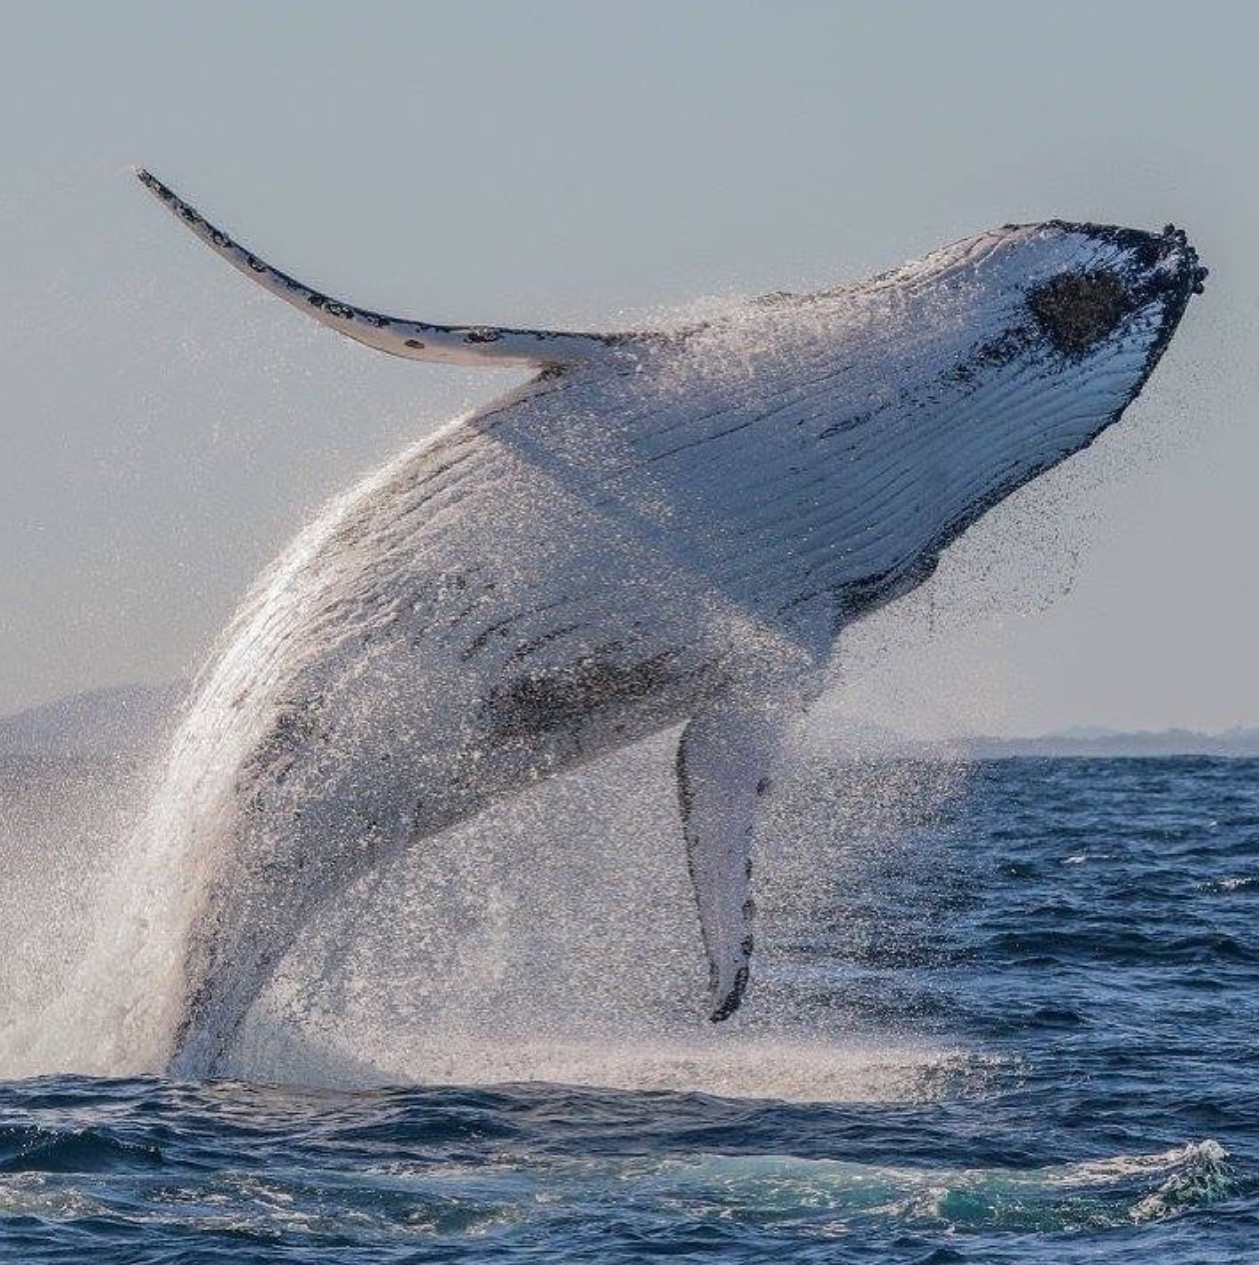 A hump back whale does an enormous breach off Port Stephens